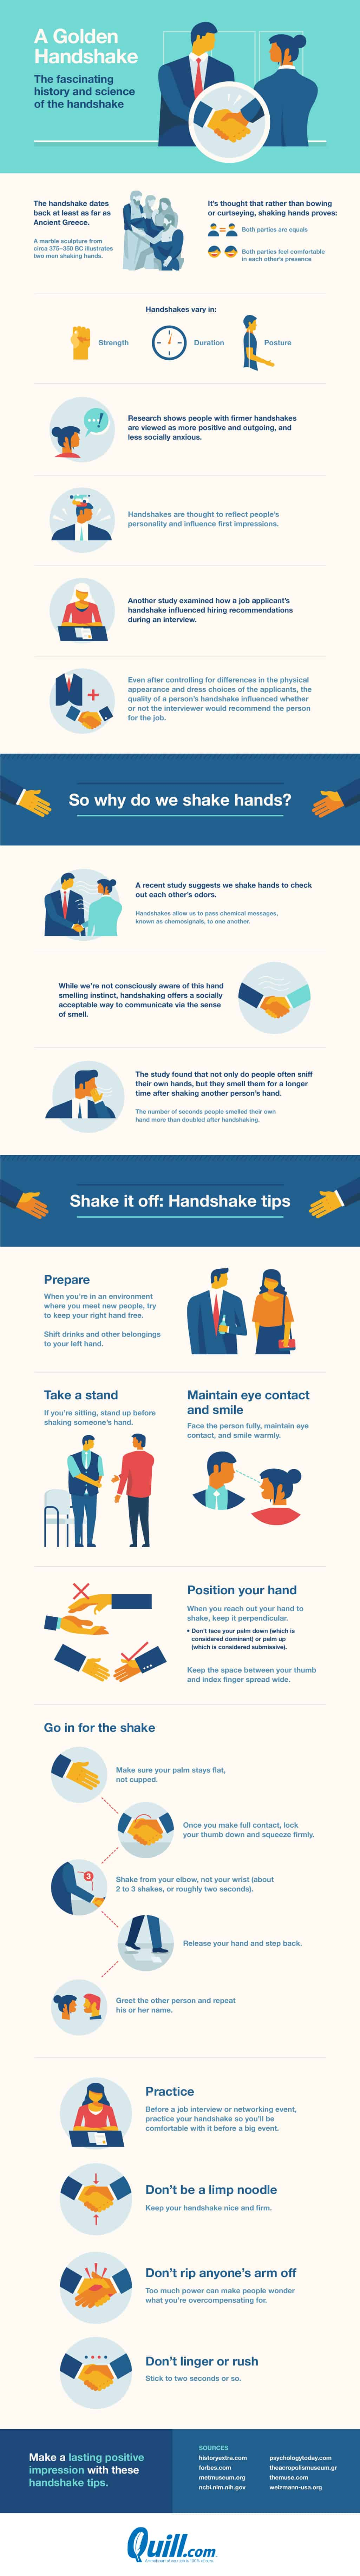 A Golden Handshake: The Fascinating History and Science of the Handshake